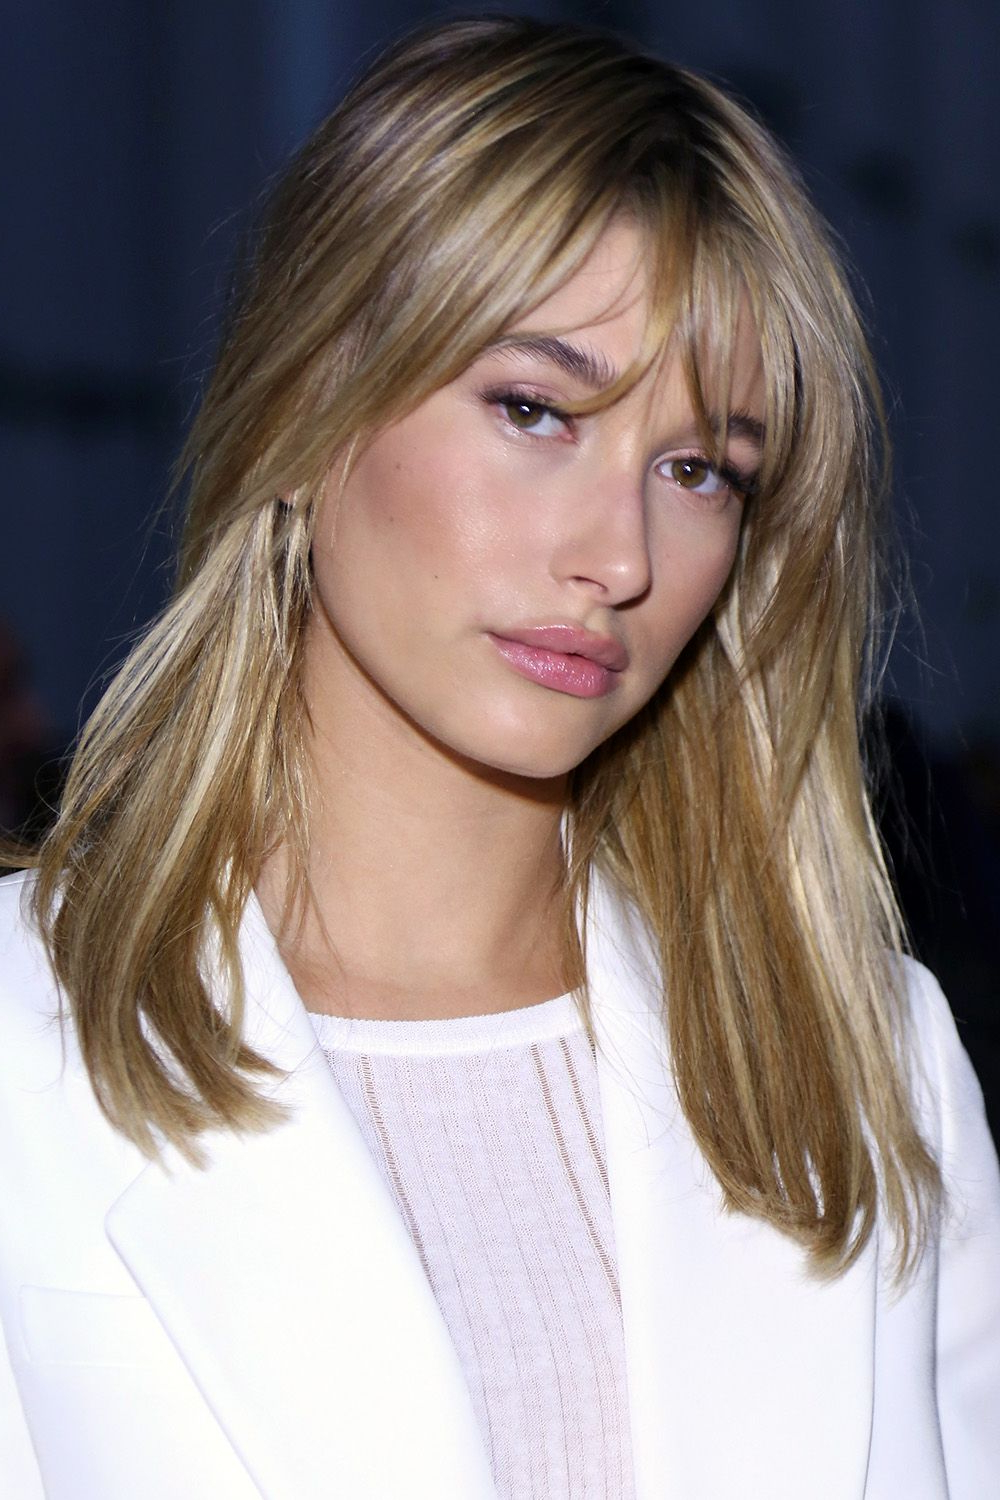 40 Best Medium Hairstyles – Celebrities With Shoulder Length Haircuts In Preferred Medium Hairstyles With Bangs (View 10 of 20)